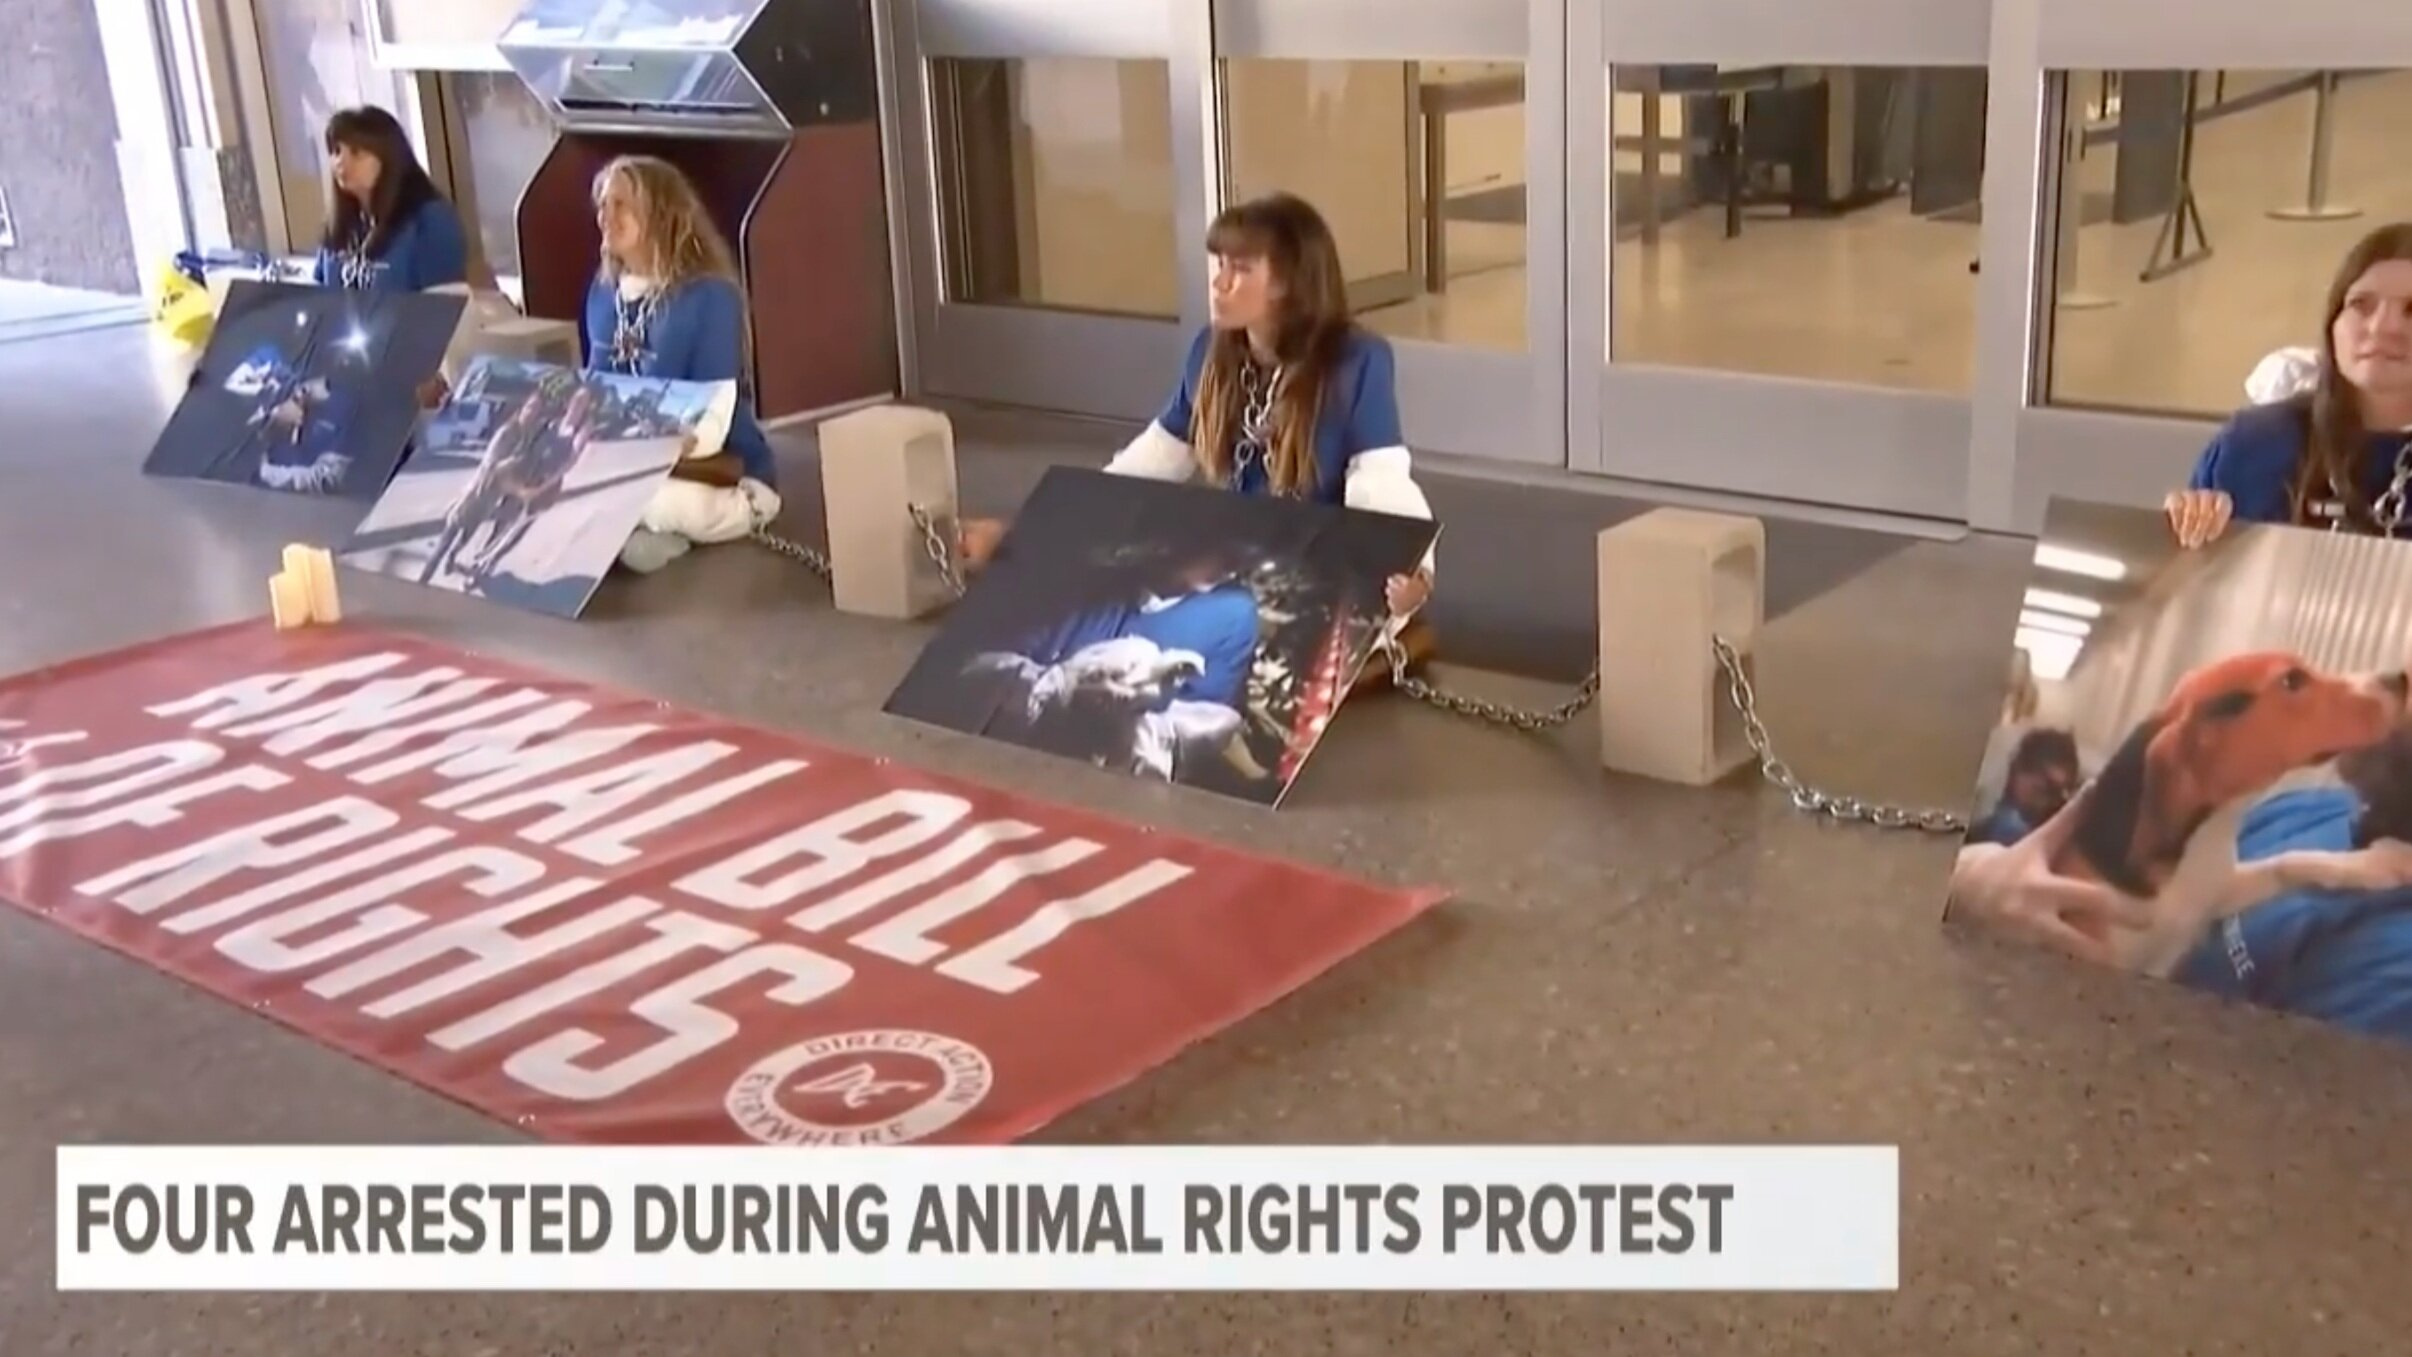 Four Arrested During Animal Rights Protest - October 4, 2019CBS San Diego